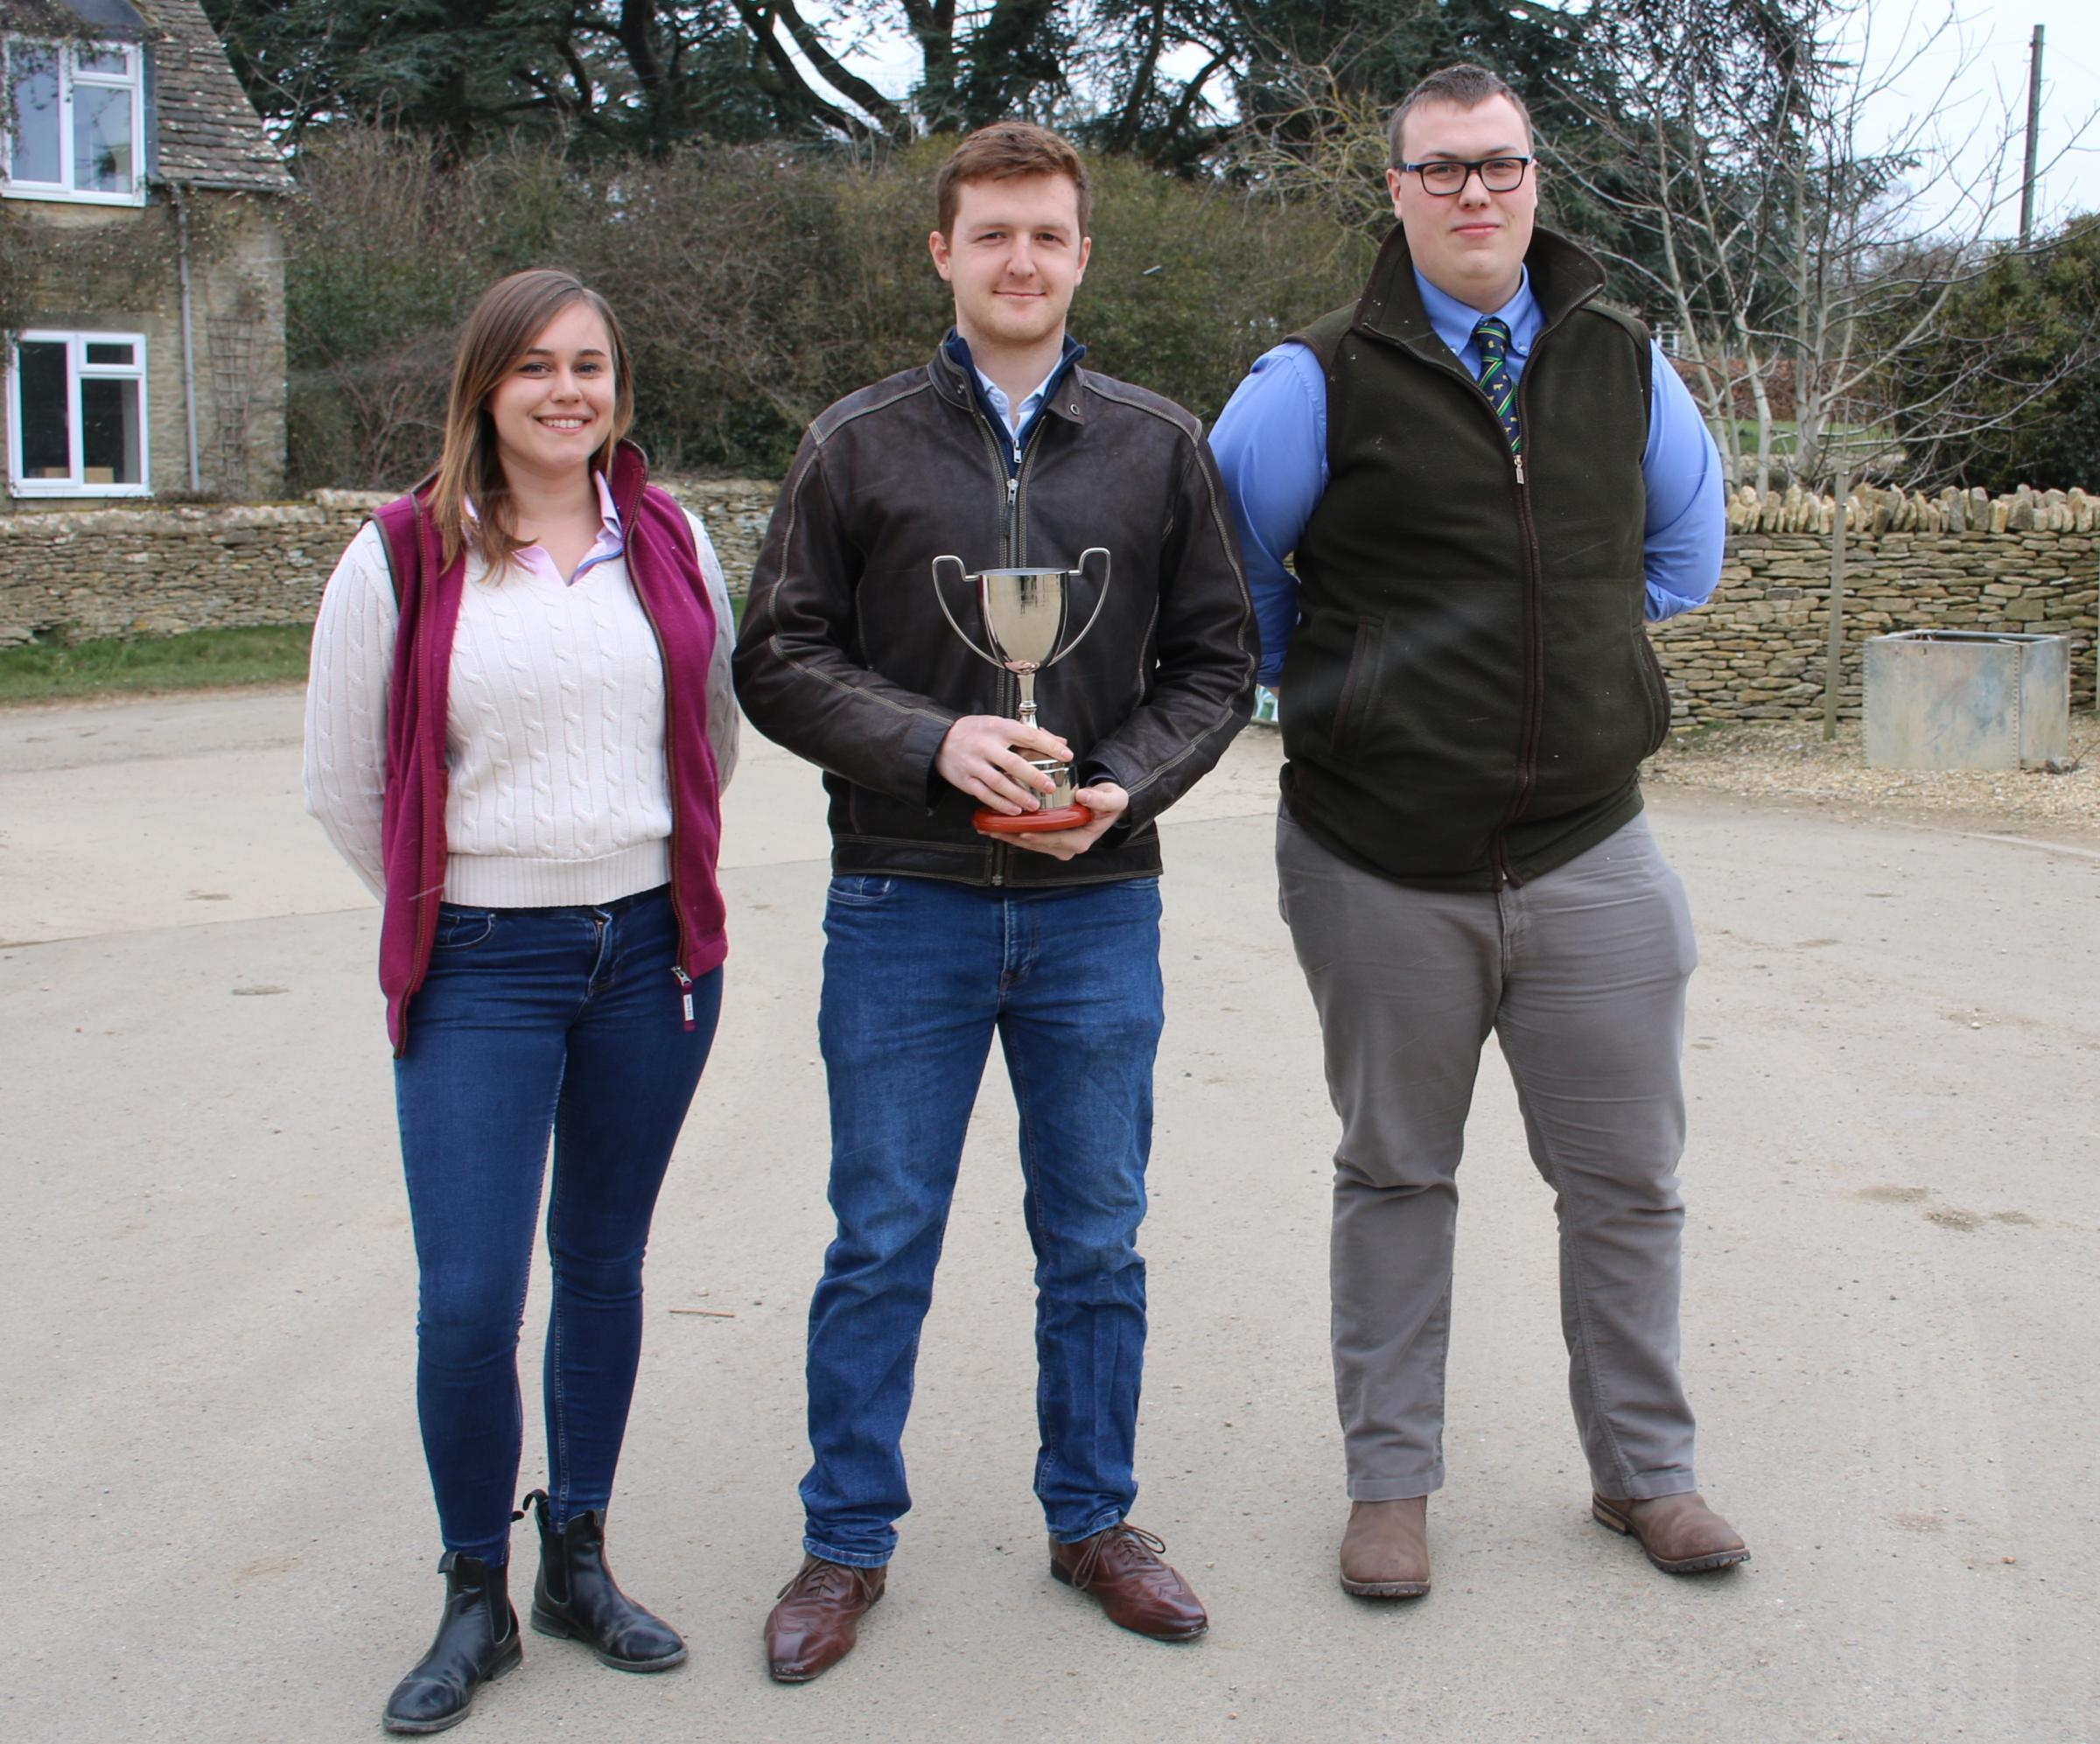 The NIAB 2017 Agronomy Cup winners Anna Crockford, David Casebow and James Bradley from Aberystwyth University's Institute of Biological, Environmental and Rural Sciences